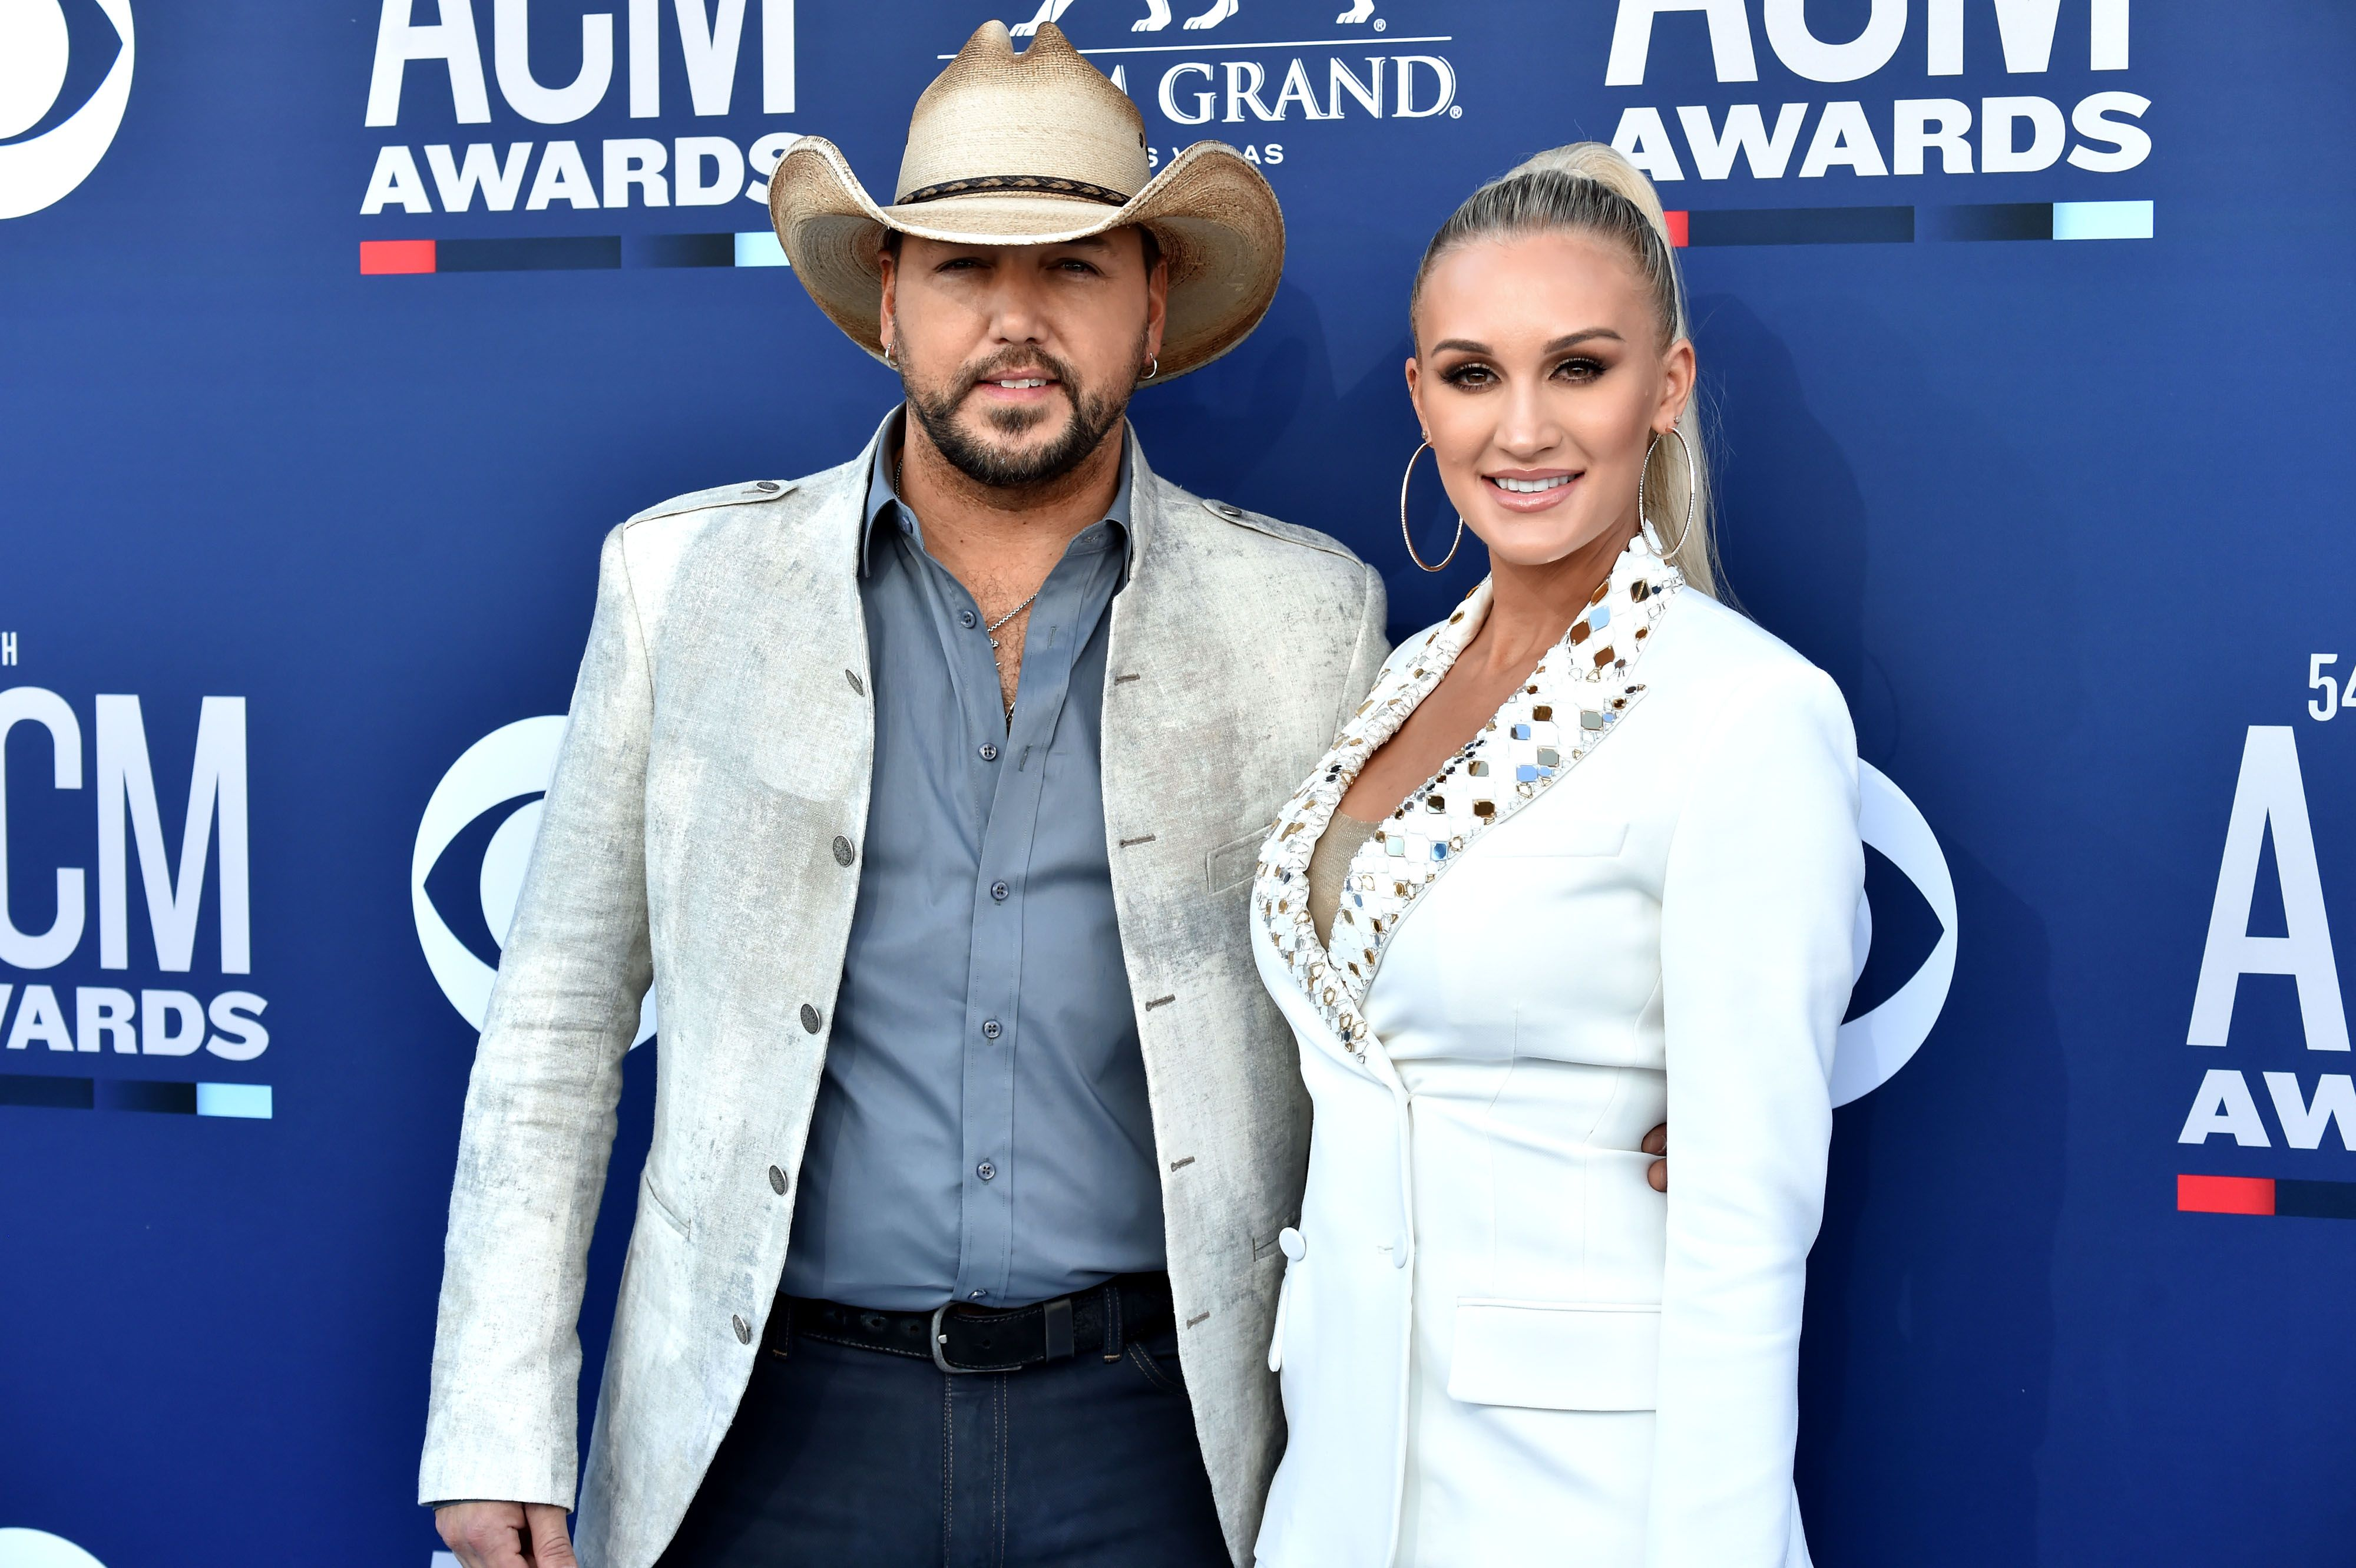 Jason Aldean and Brittany Aldean at the 54th Academy Of Country Music Awards at MGM Grand Hotel & Casino on April 07, 2019 in Las Vegas, Nevada | Photo: Getty Images